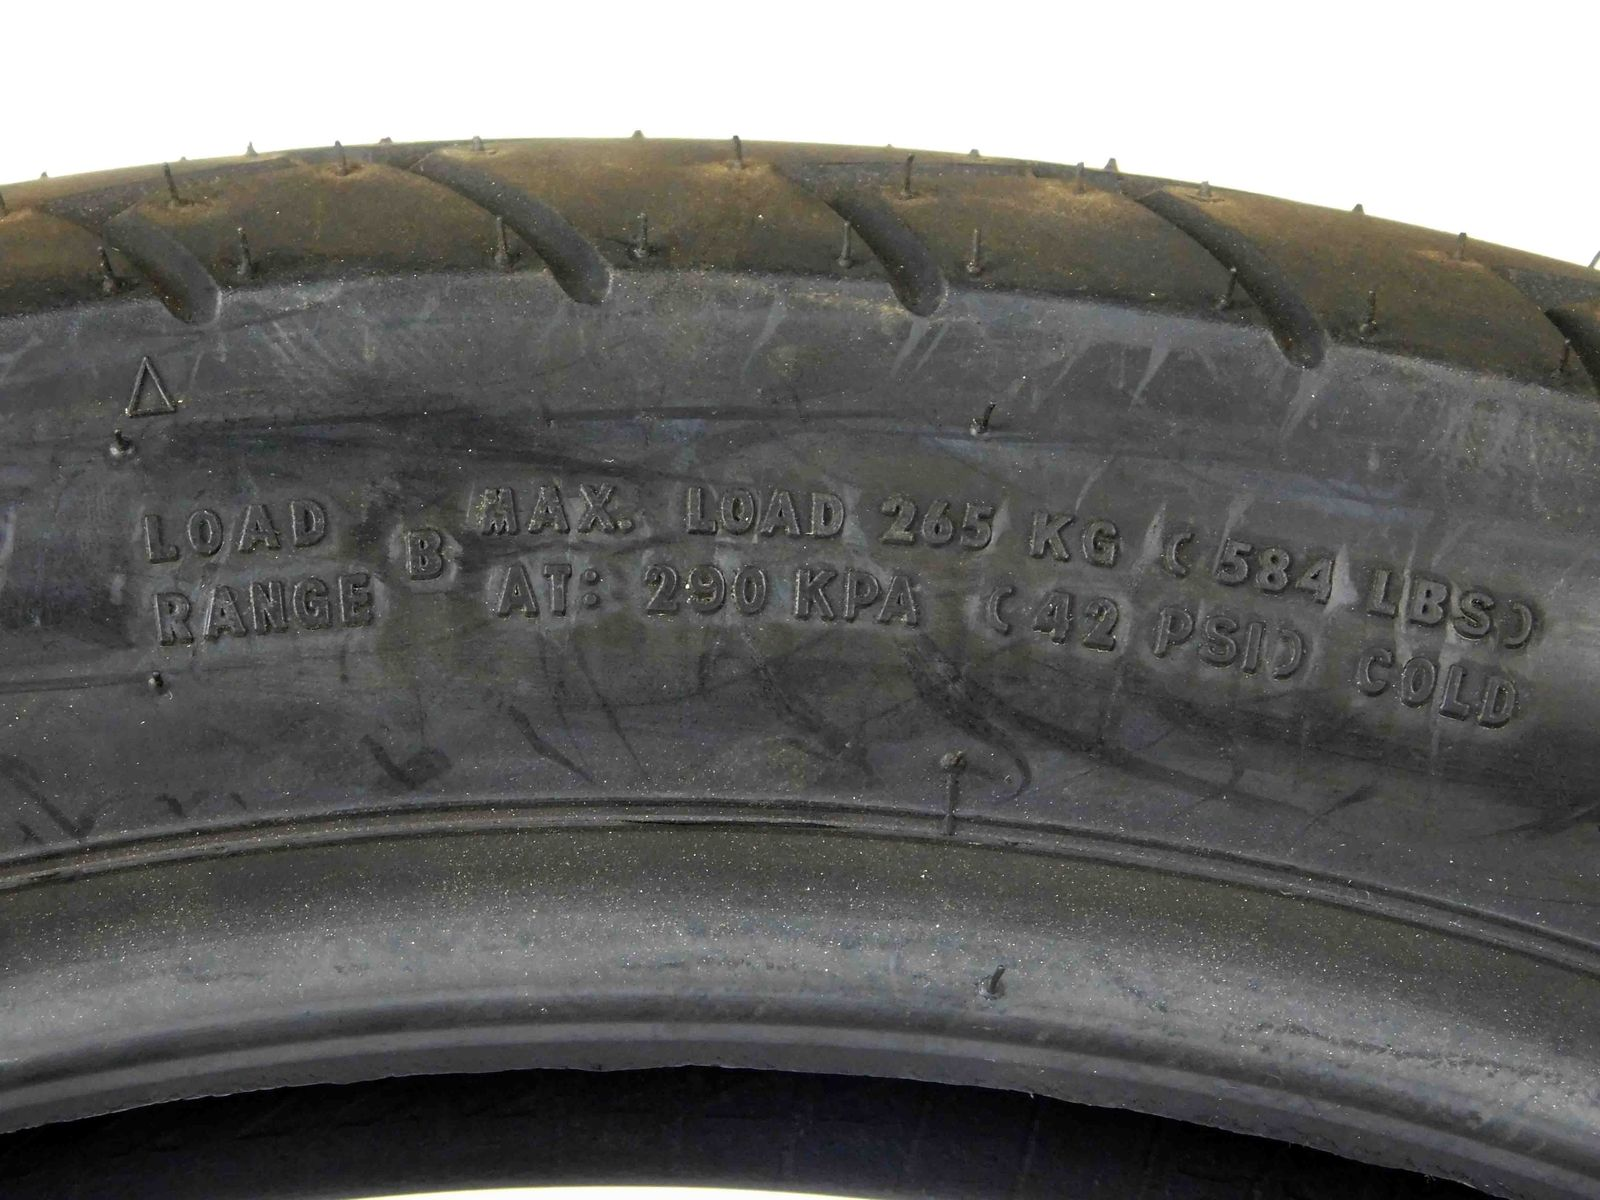 Full-Bore-110-90-19-Front-140-90-15-Rear-Set-Cruiser-Motorcycle-Tires-image-4